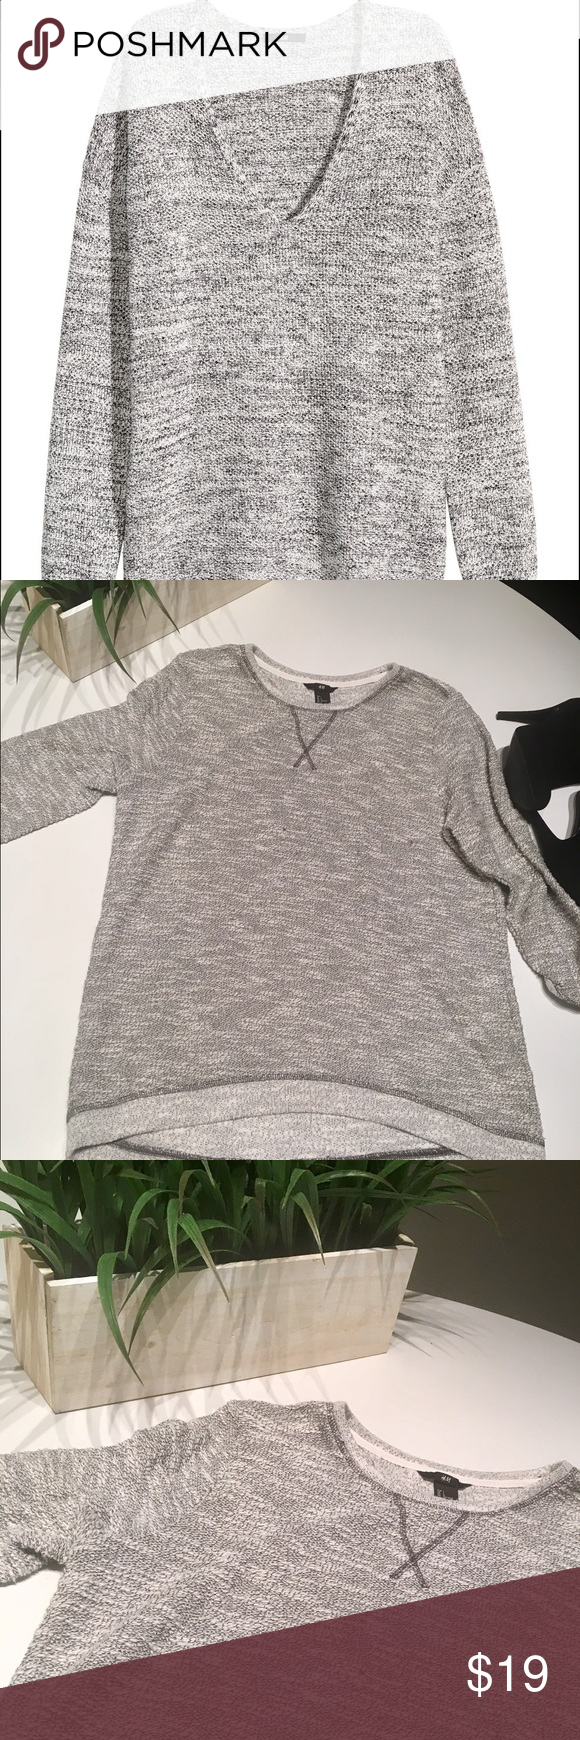 H&M tunic top Great gray and white sweater top! Dress up or dress down! Great condition. First picture is not exact. 69% Cotton 31% Polyester H&M Tops Tunics